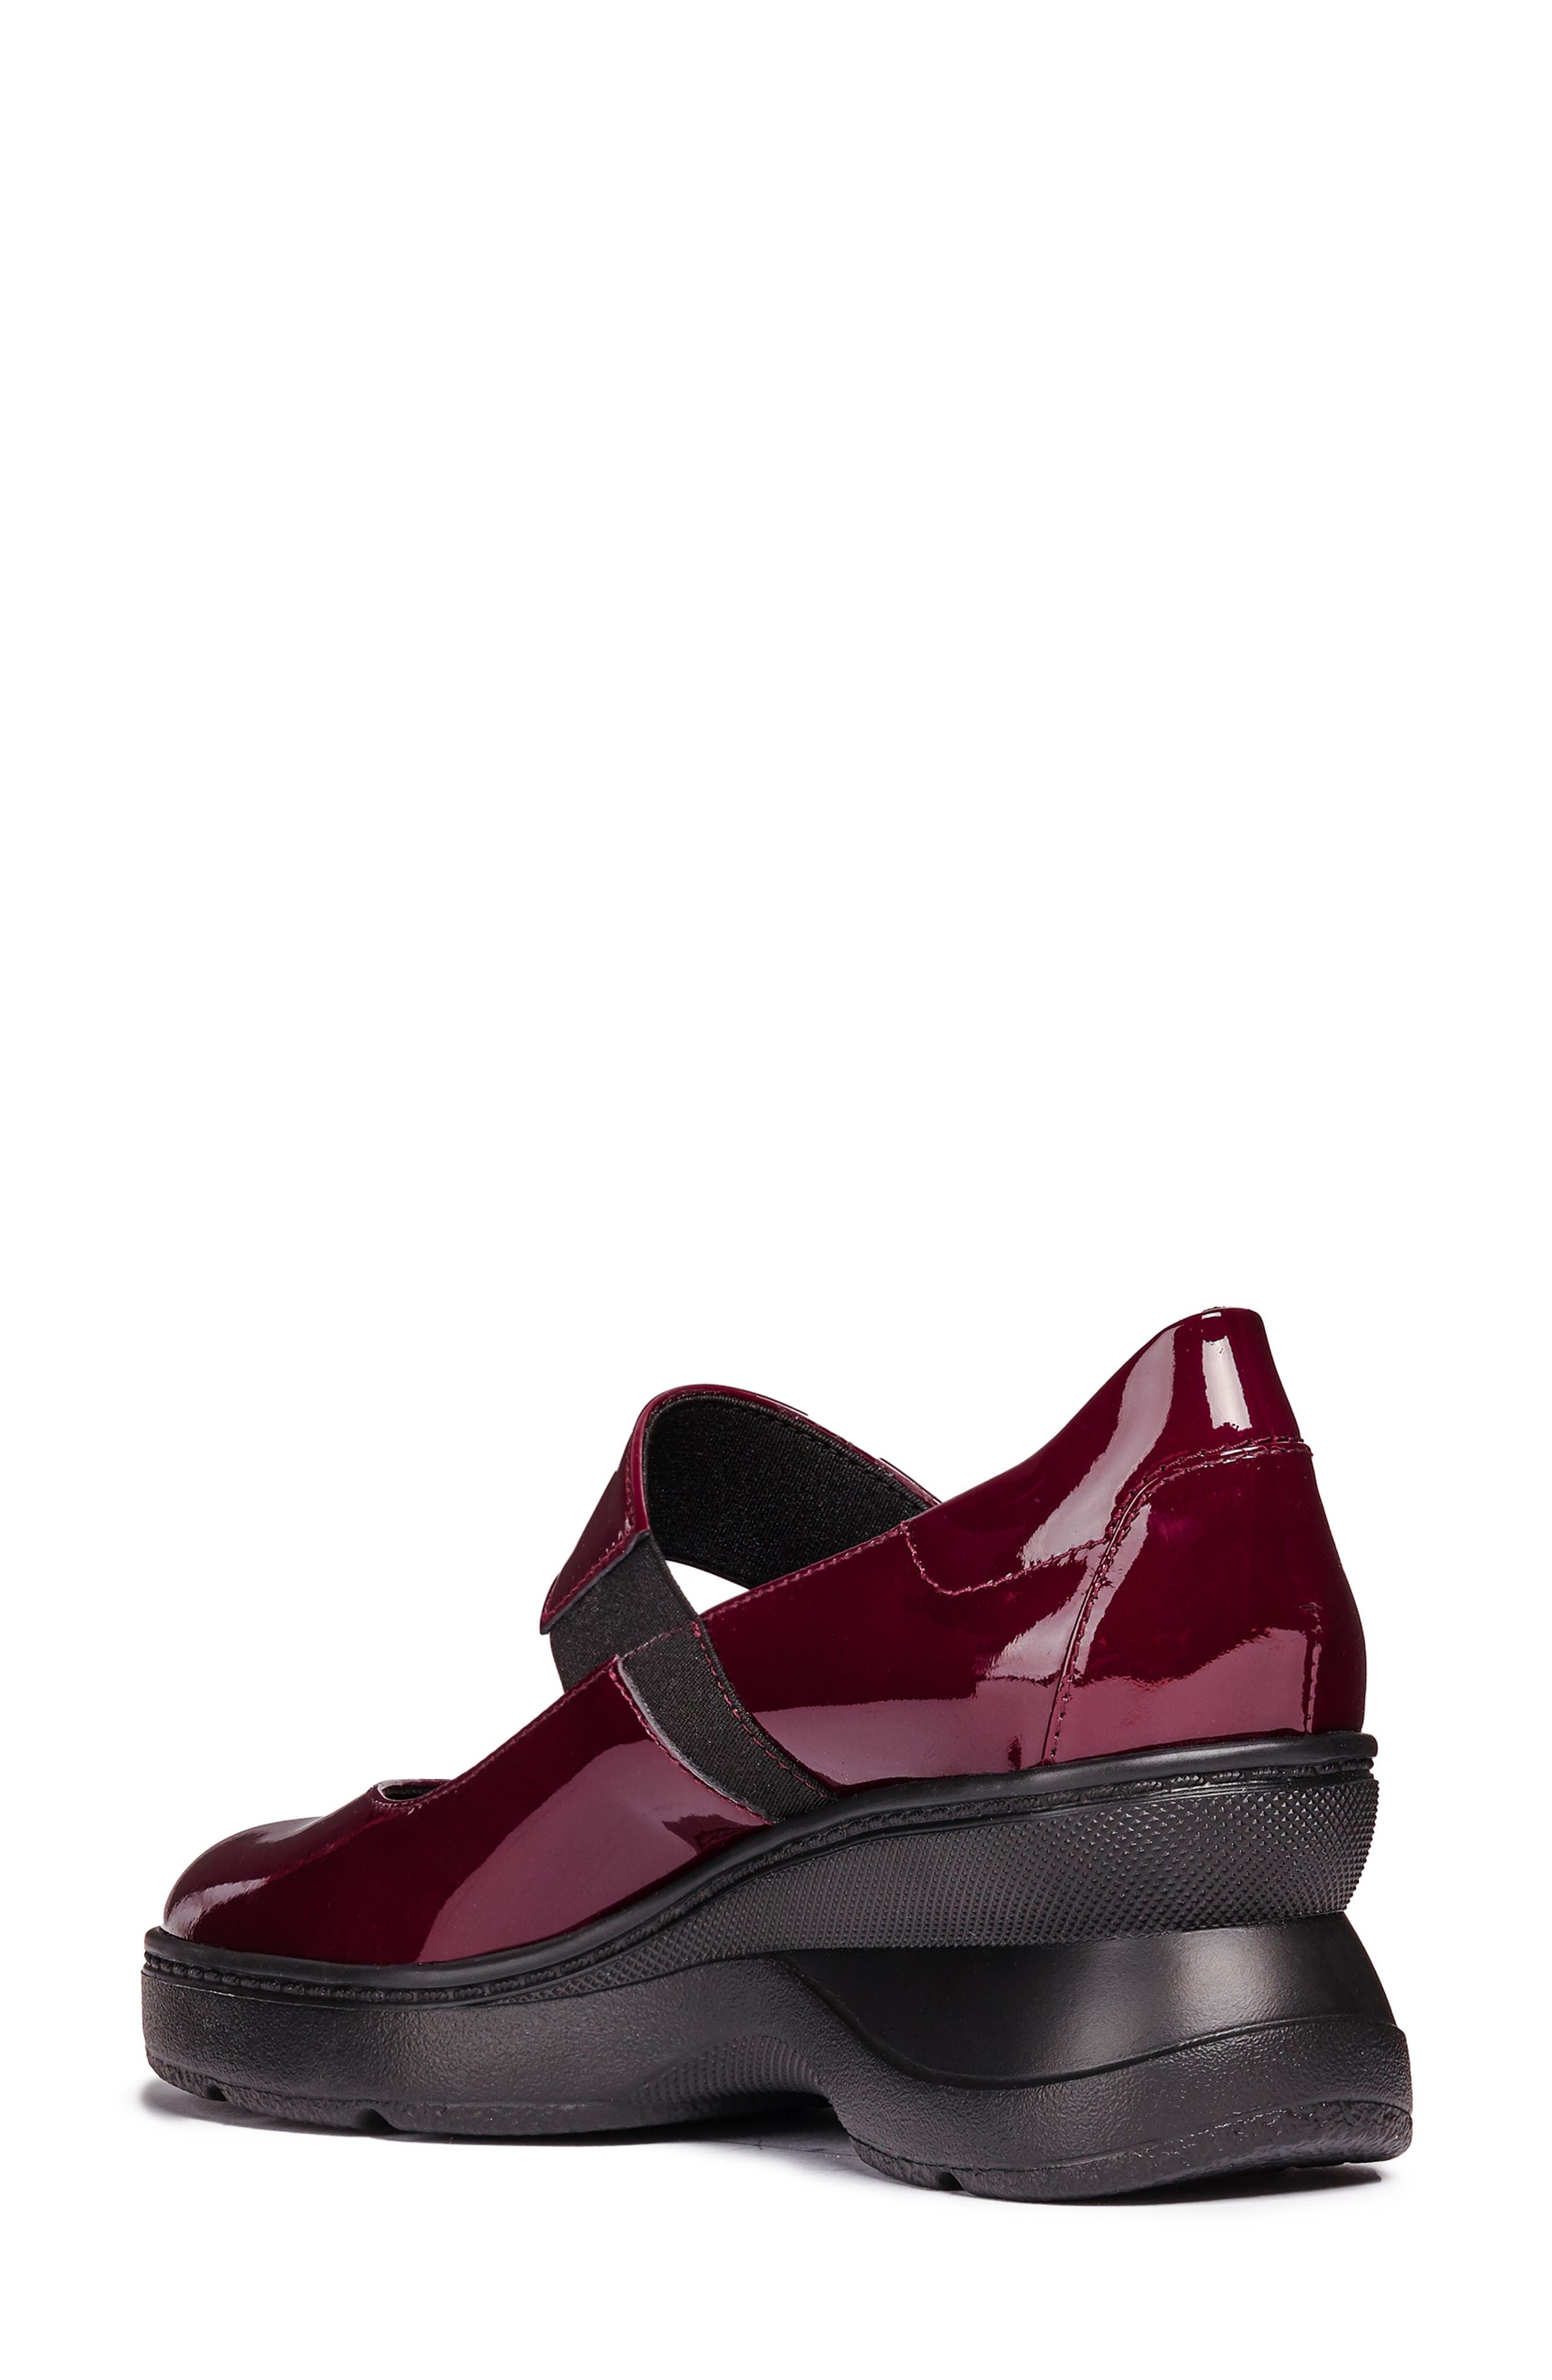 Ascythia Mary Jane Wedge,                             Alternate thumbnail 2, color,                             BORDEAUX LEATHER